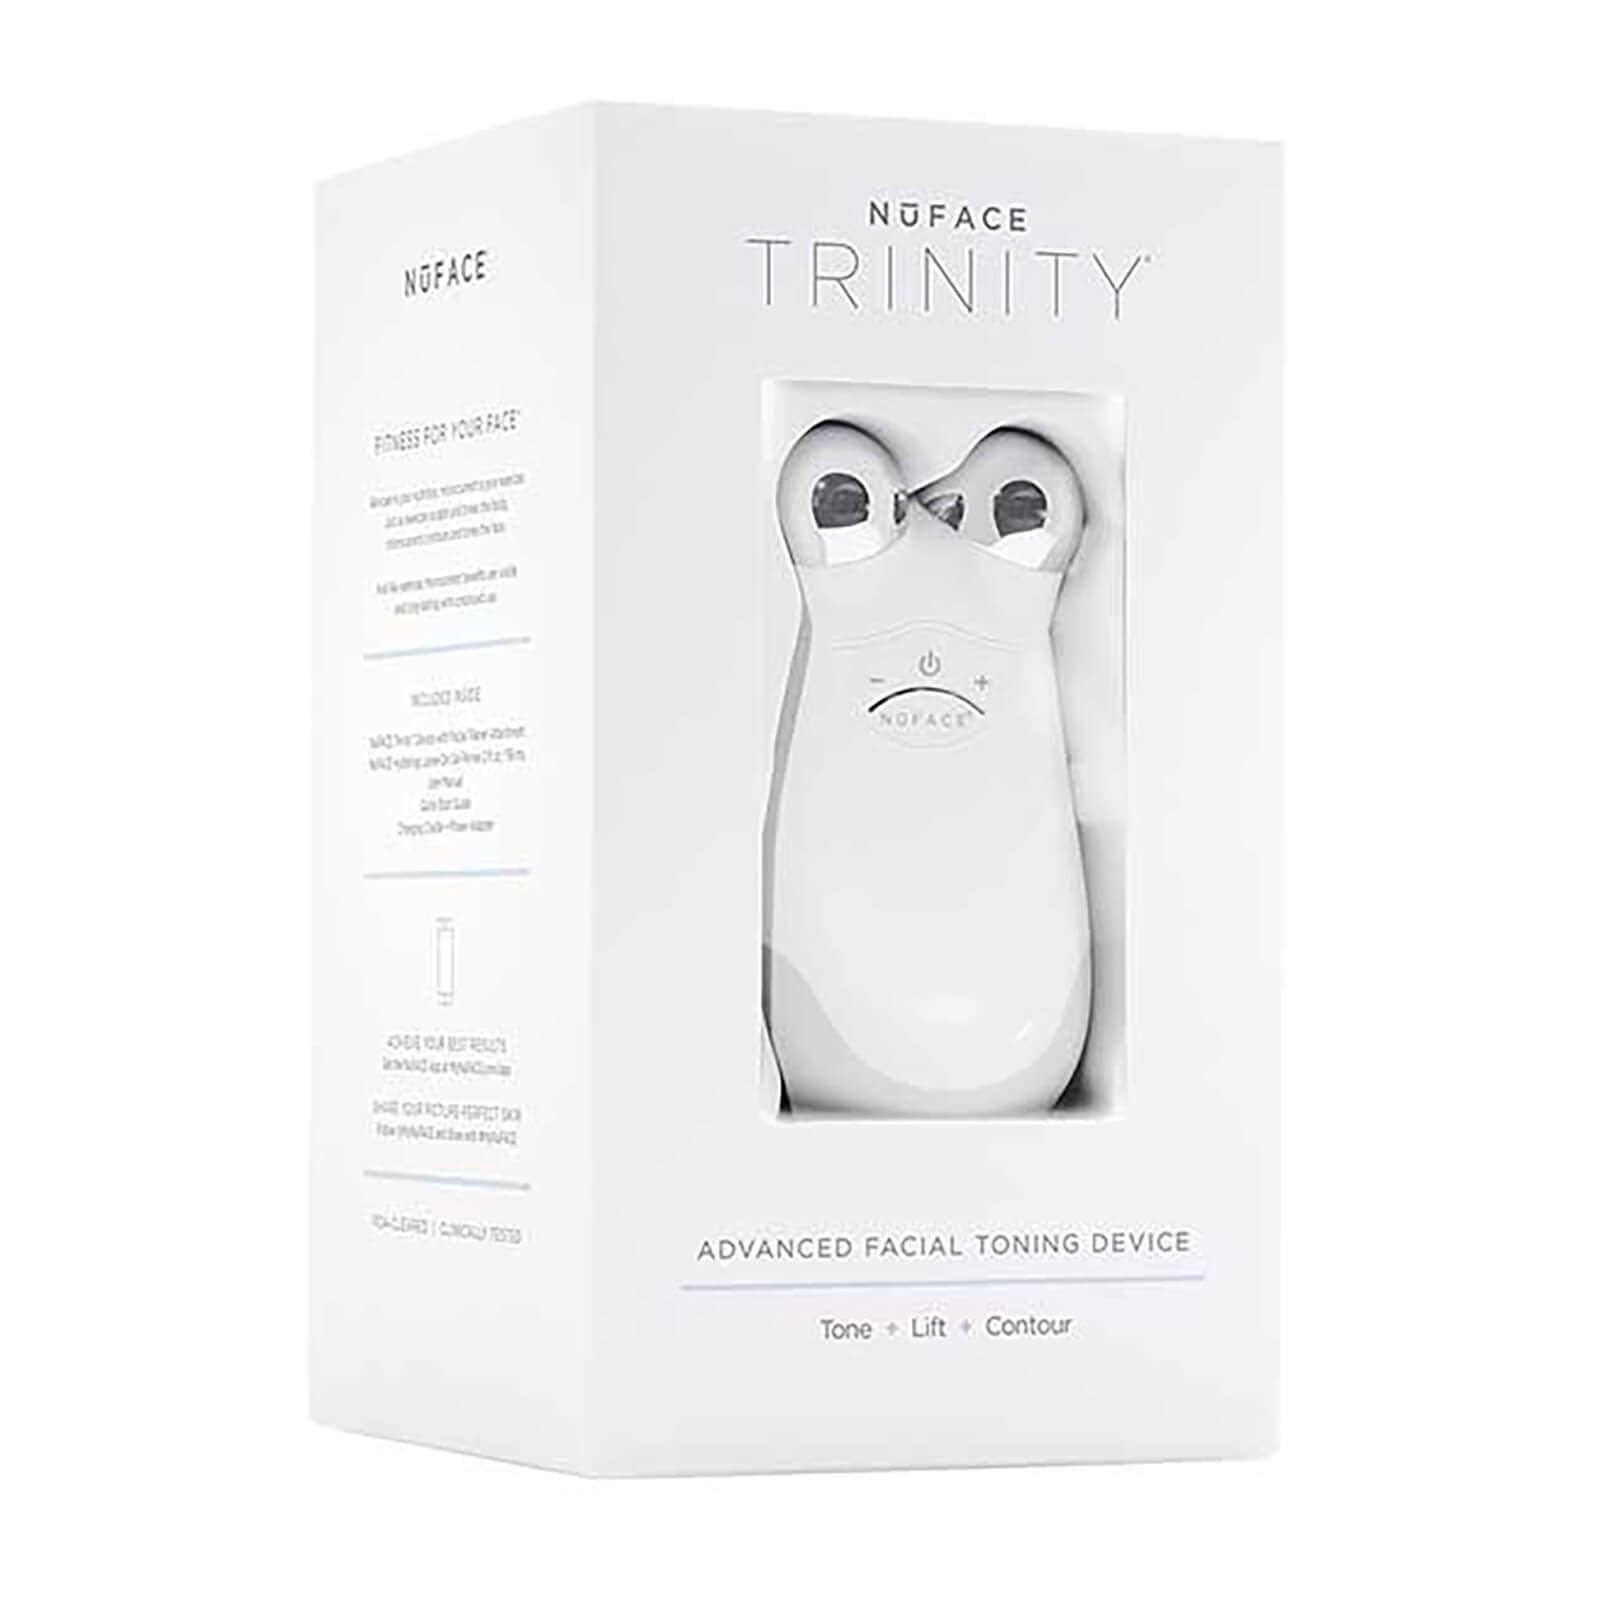 Watch a story about NUFACE TRINITY FACIAL TONING DEVICE